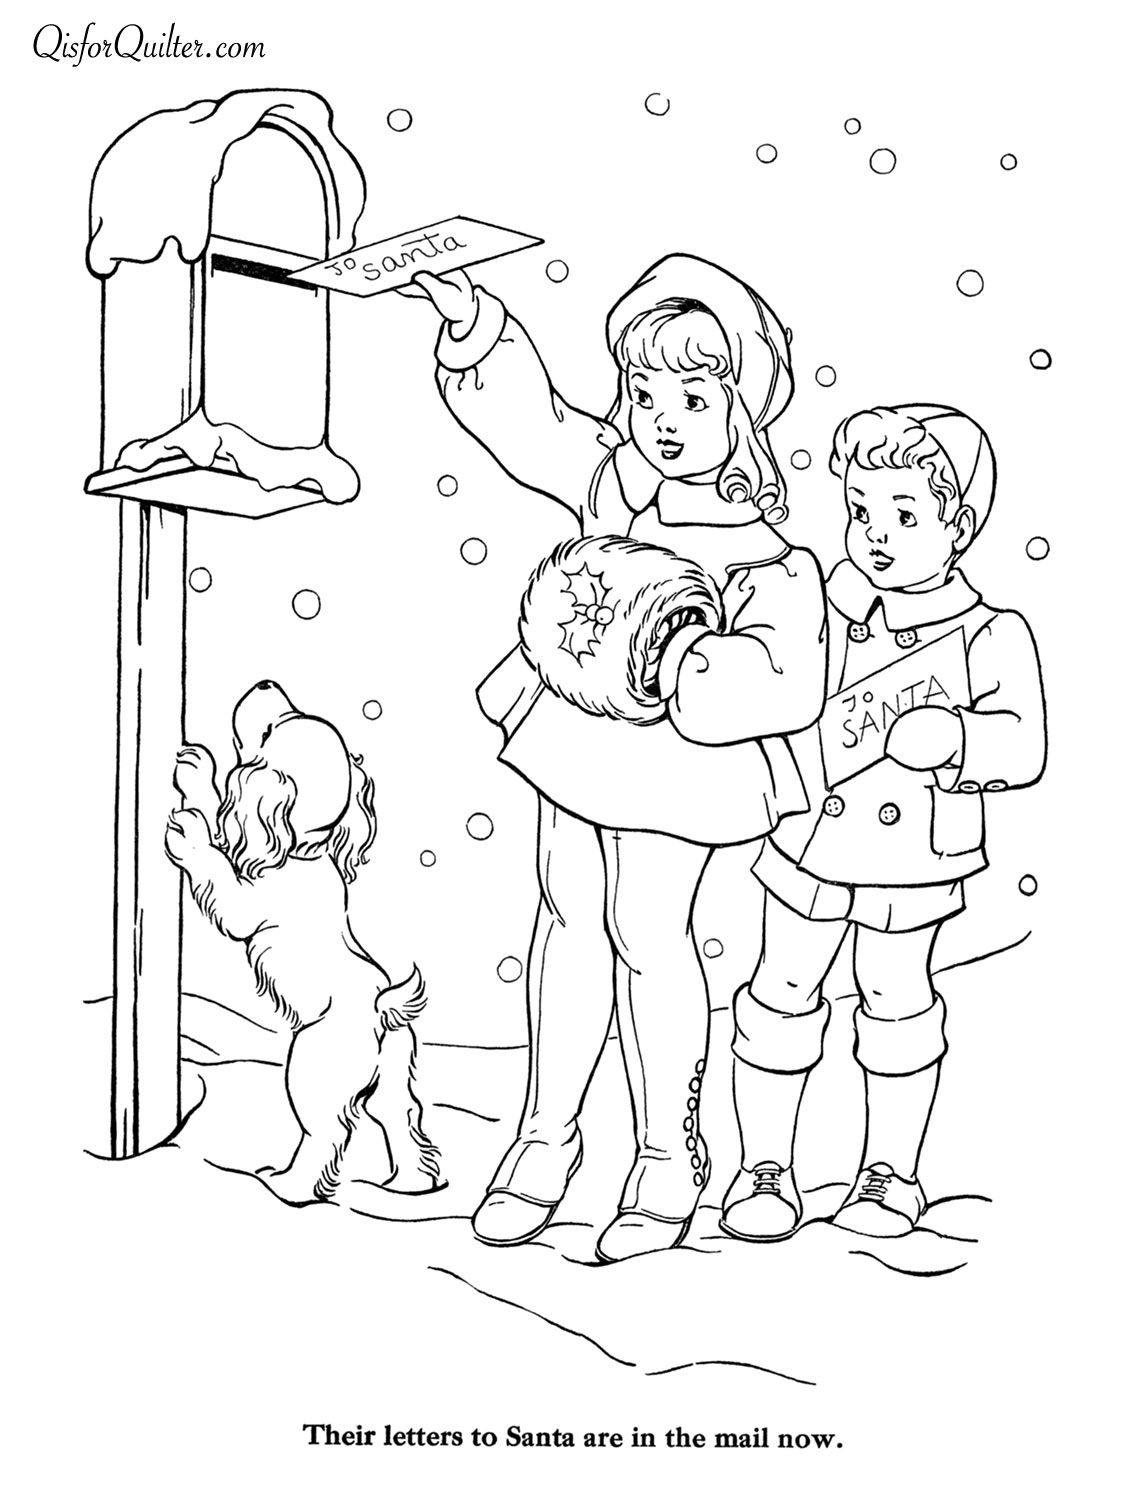 Merry-Christmas-Paint-Book-2 | Colouring pages | Pinterest | Painted ...